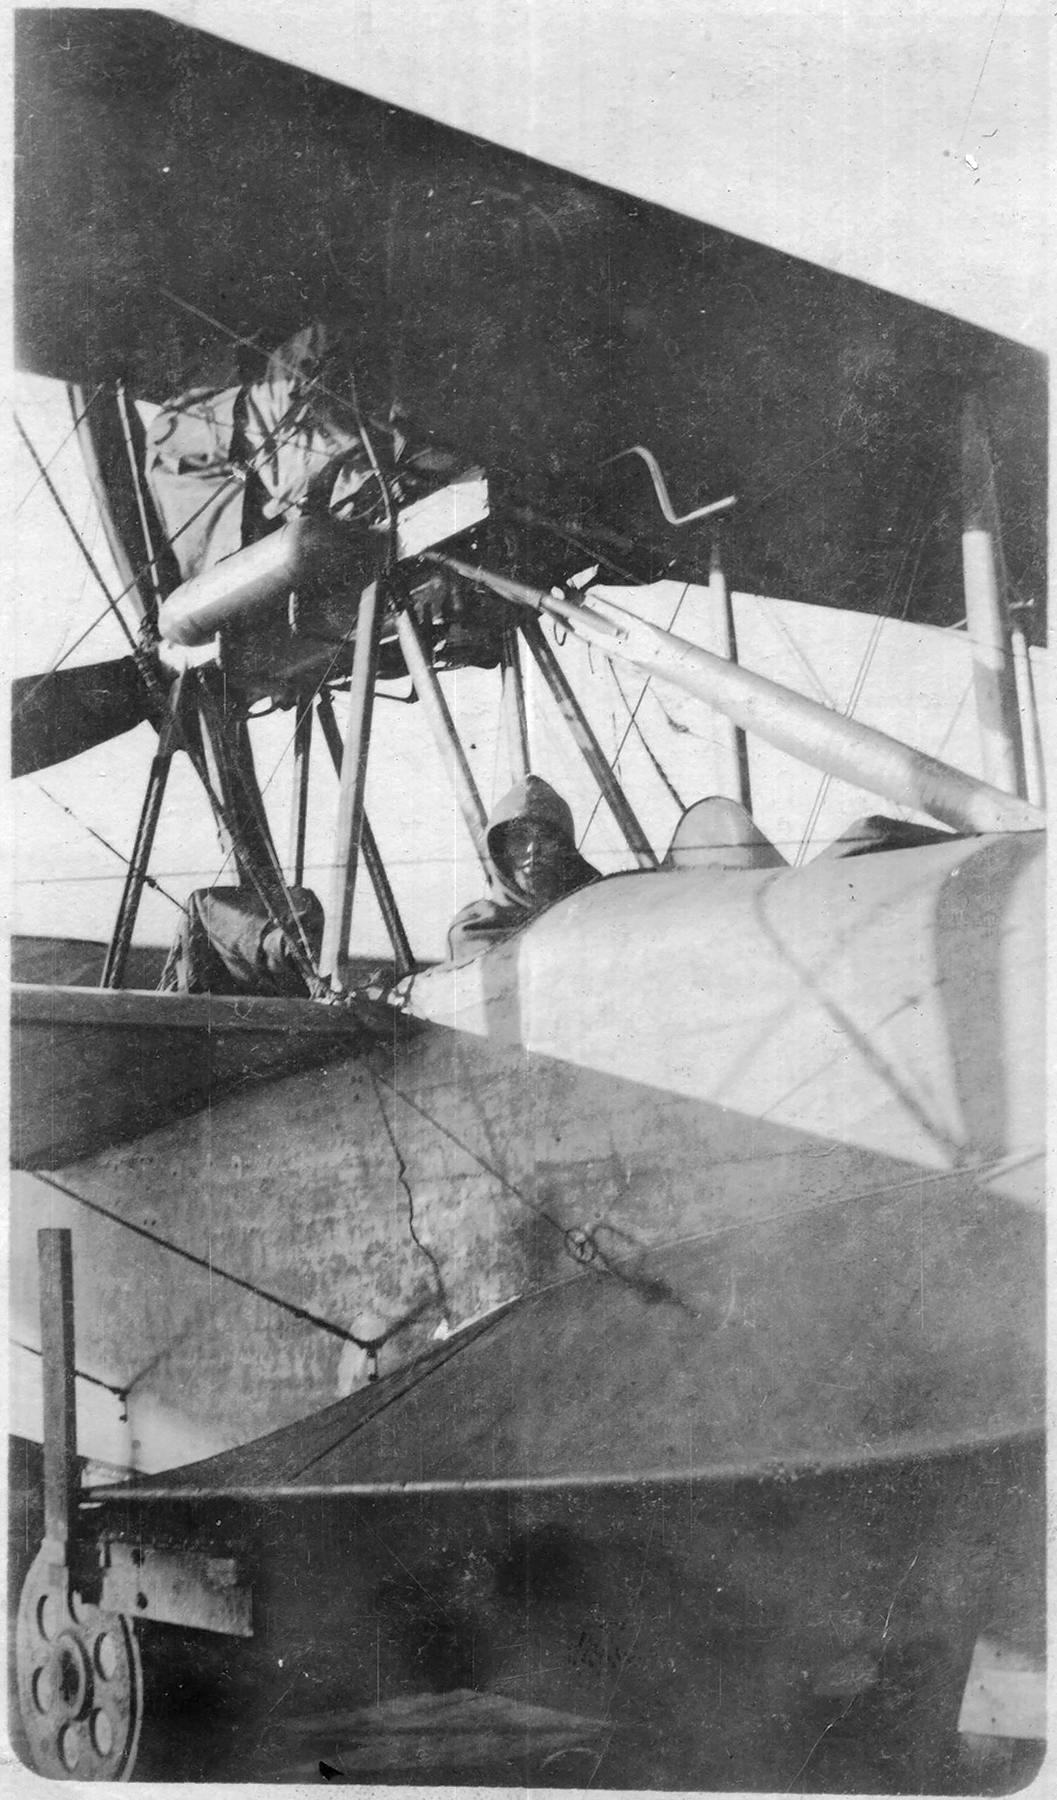 At the end of the First World War, a person sits in the cockpit of a Curtiss HS-2L flying boat at Baker Point/U.S. Naval Air Station Halifax, Nova Scotia. PHOTO: Shearwater Aviation Museum / https://hmhps.ca/sites/bakers-point-or-12-wing-shearwater (Halifax Military Heritage Preservation Society)